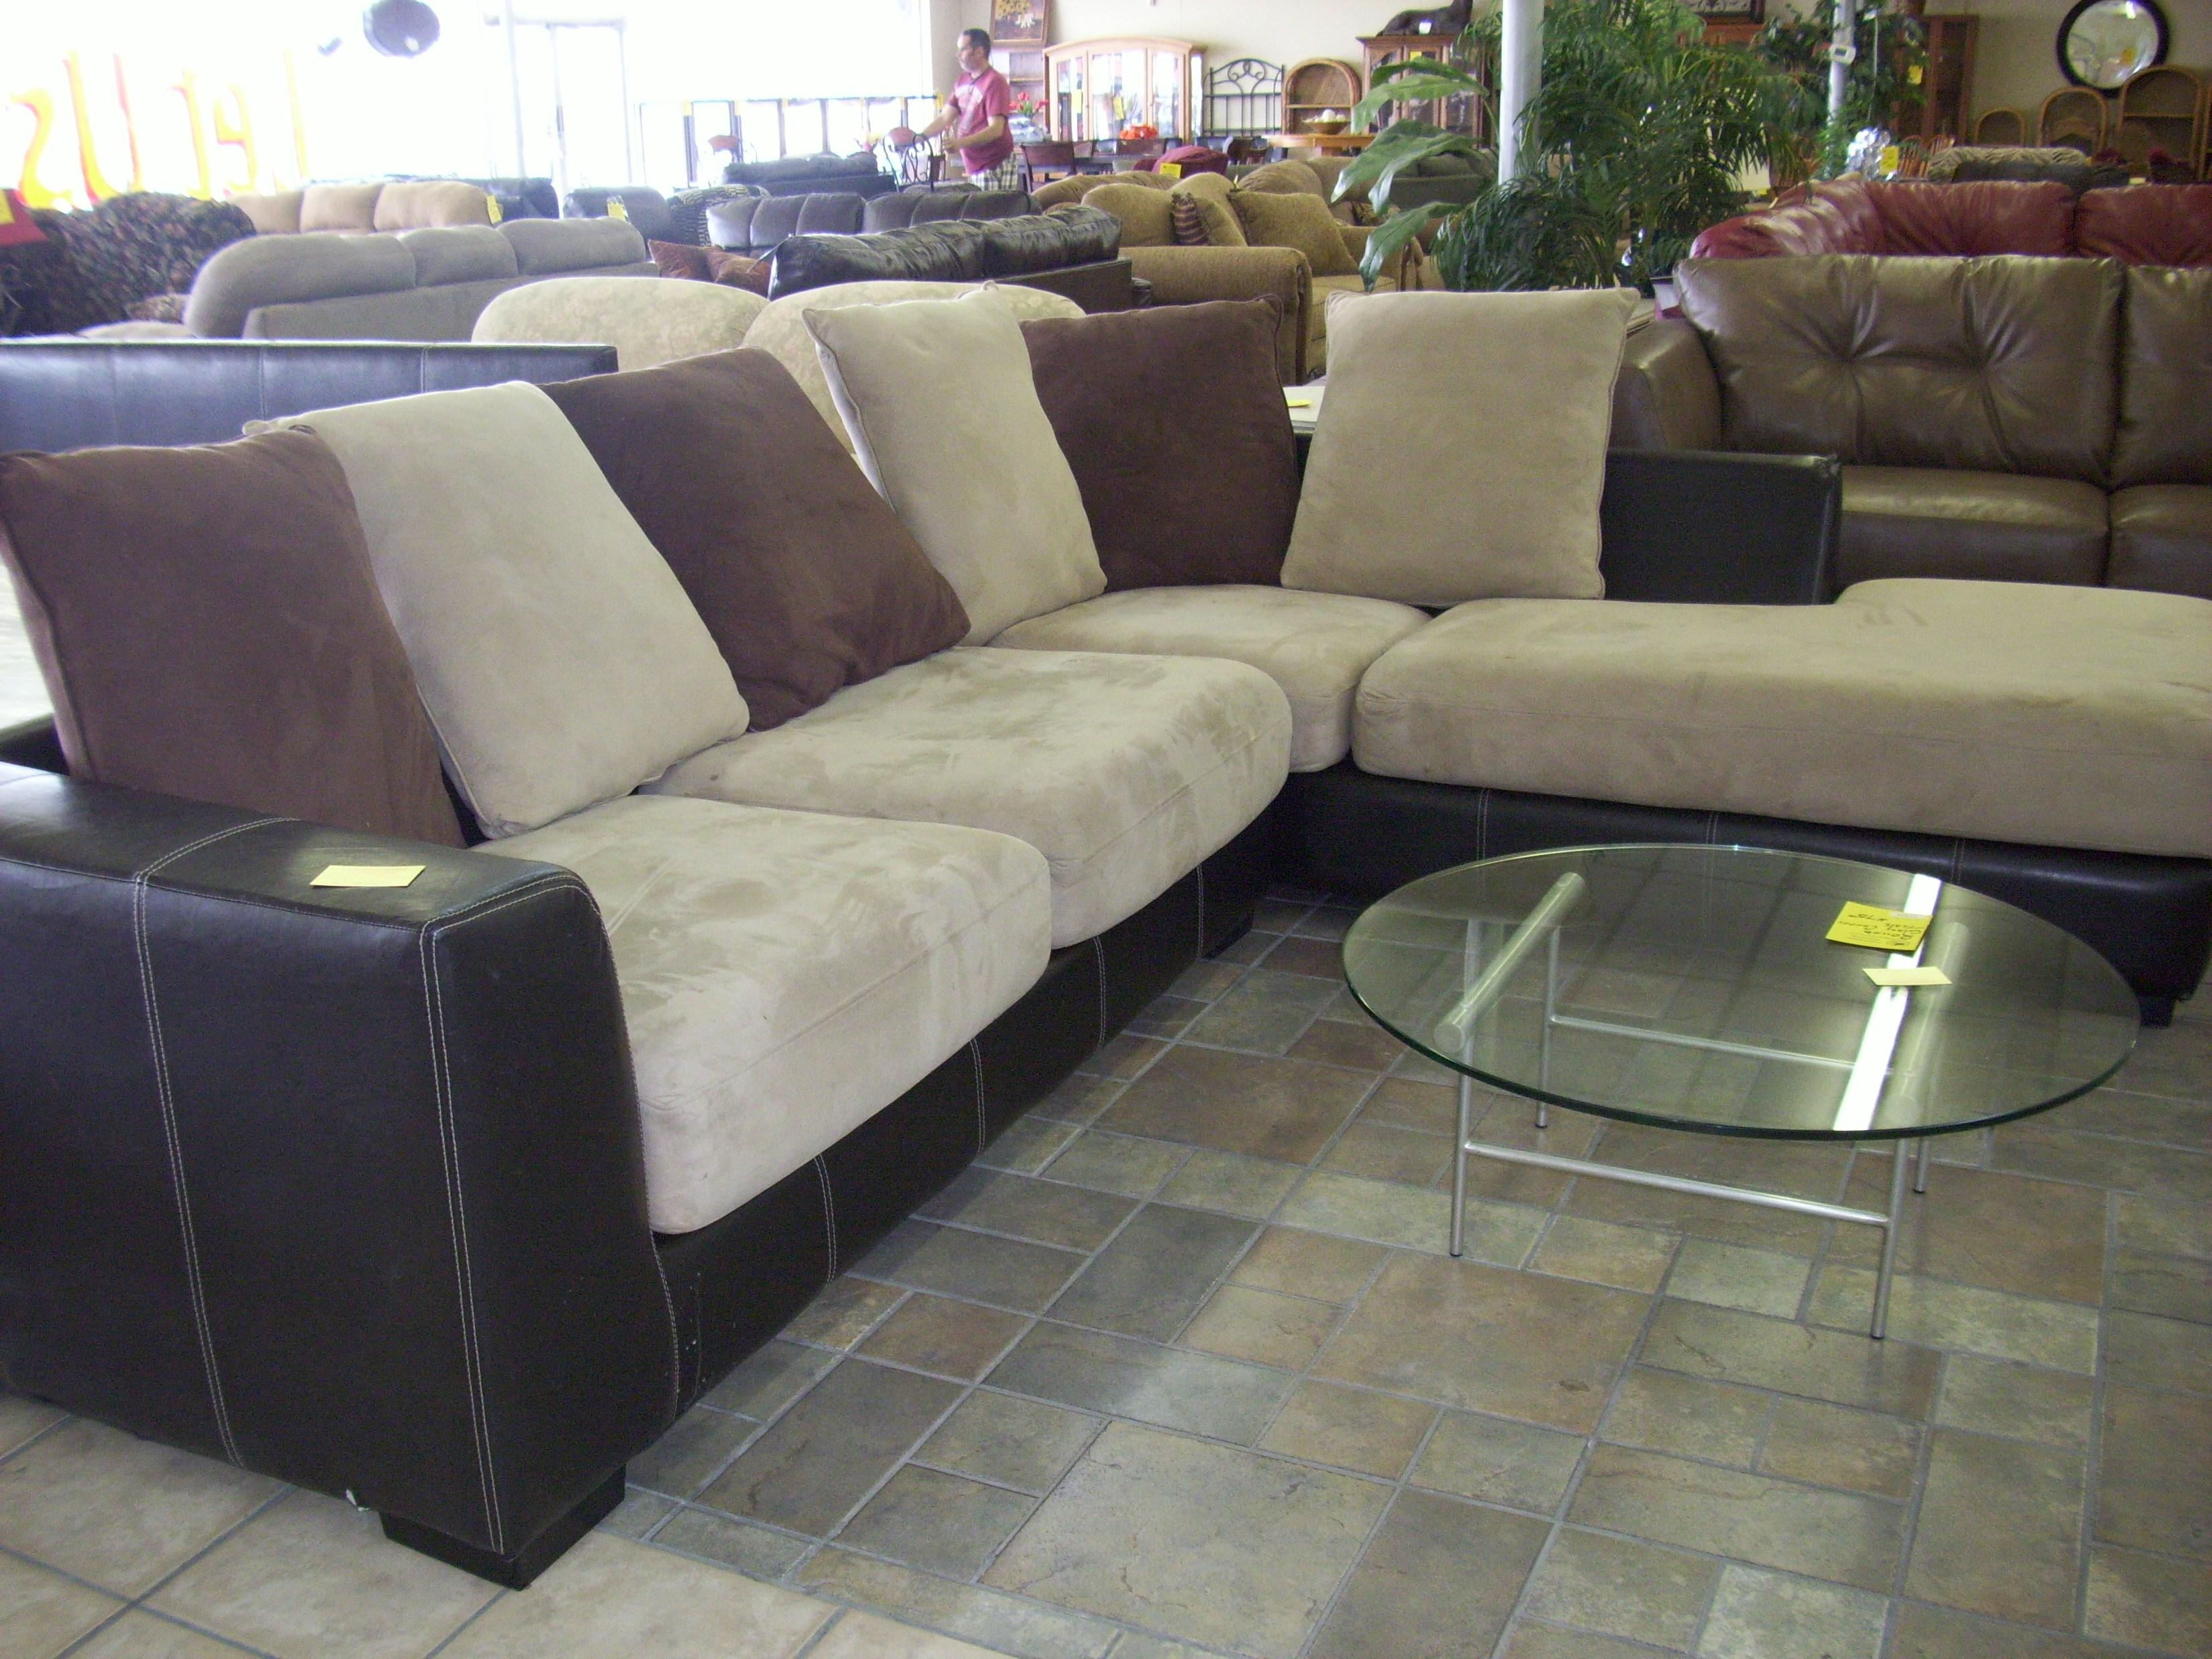 Furniture: Glamour Costco Sofa Bed To Modernize Your Living Room With Regard To Euro Sofas (Image 16 of 20)